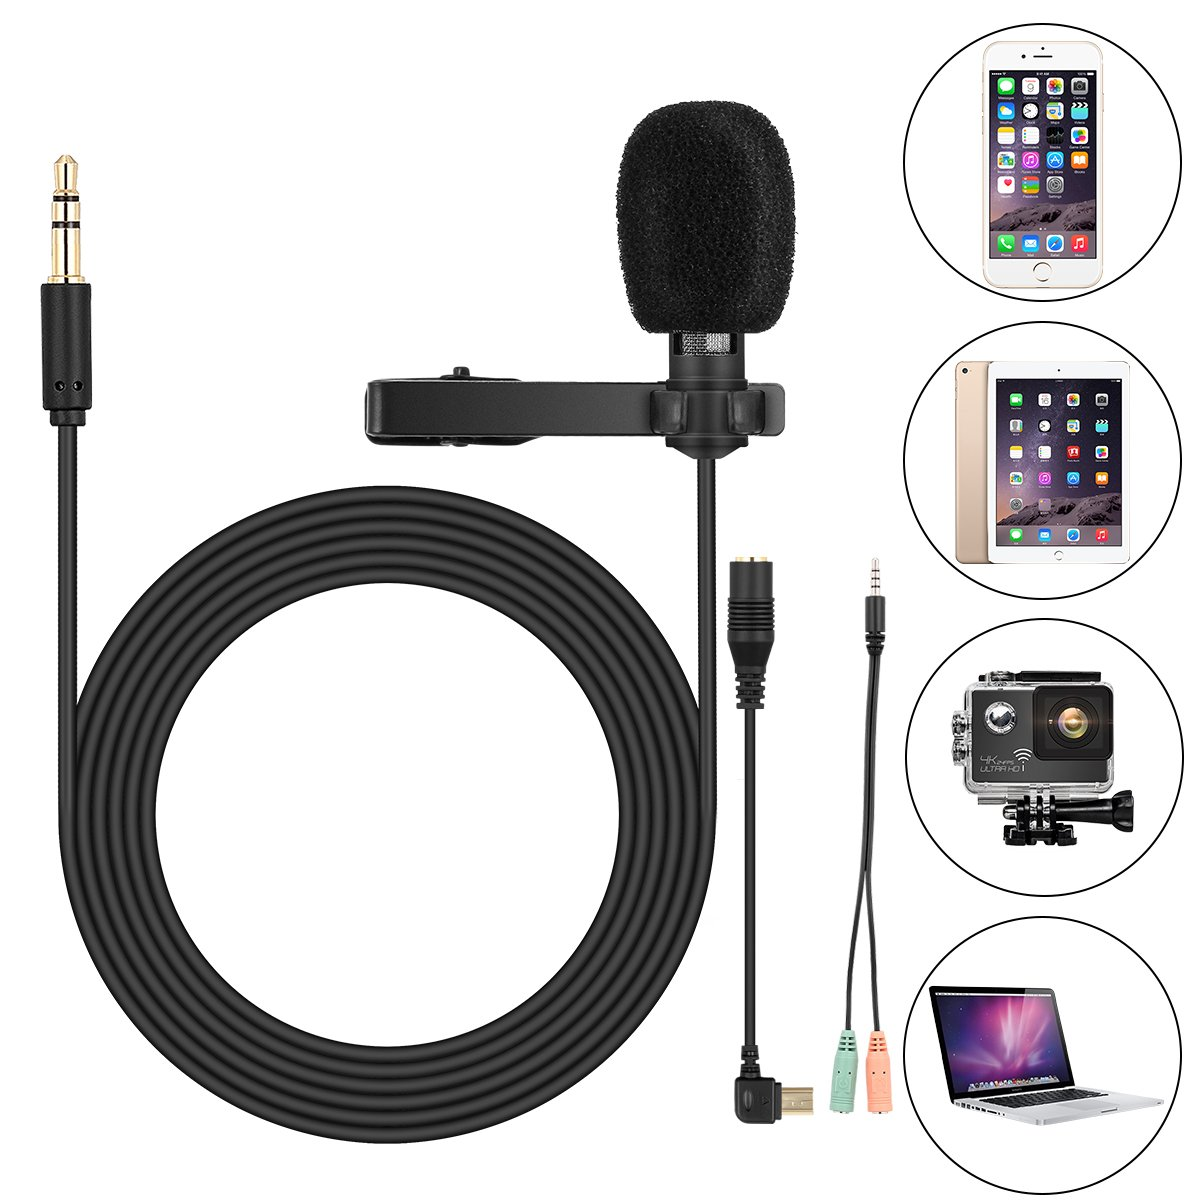 Clip On Microphone,Lav Mic, for GoPro Hero 3 3+ 4,iPhone,iPad,Computer,PC,Laptop,Lavalier Lapel Microphone,SOONHUA 3.5MM Mini Condenser Mic for YouTube Video, Podcast Recording,Gaming(6FT Cord) by SOONHUA